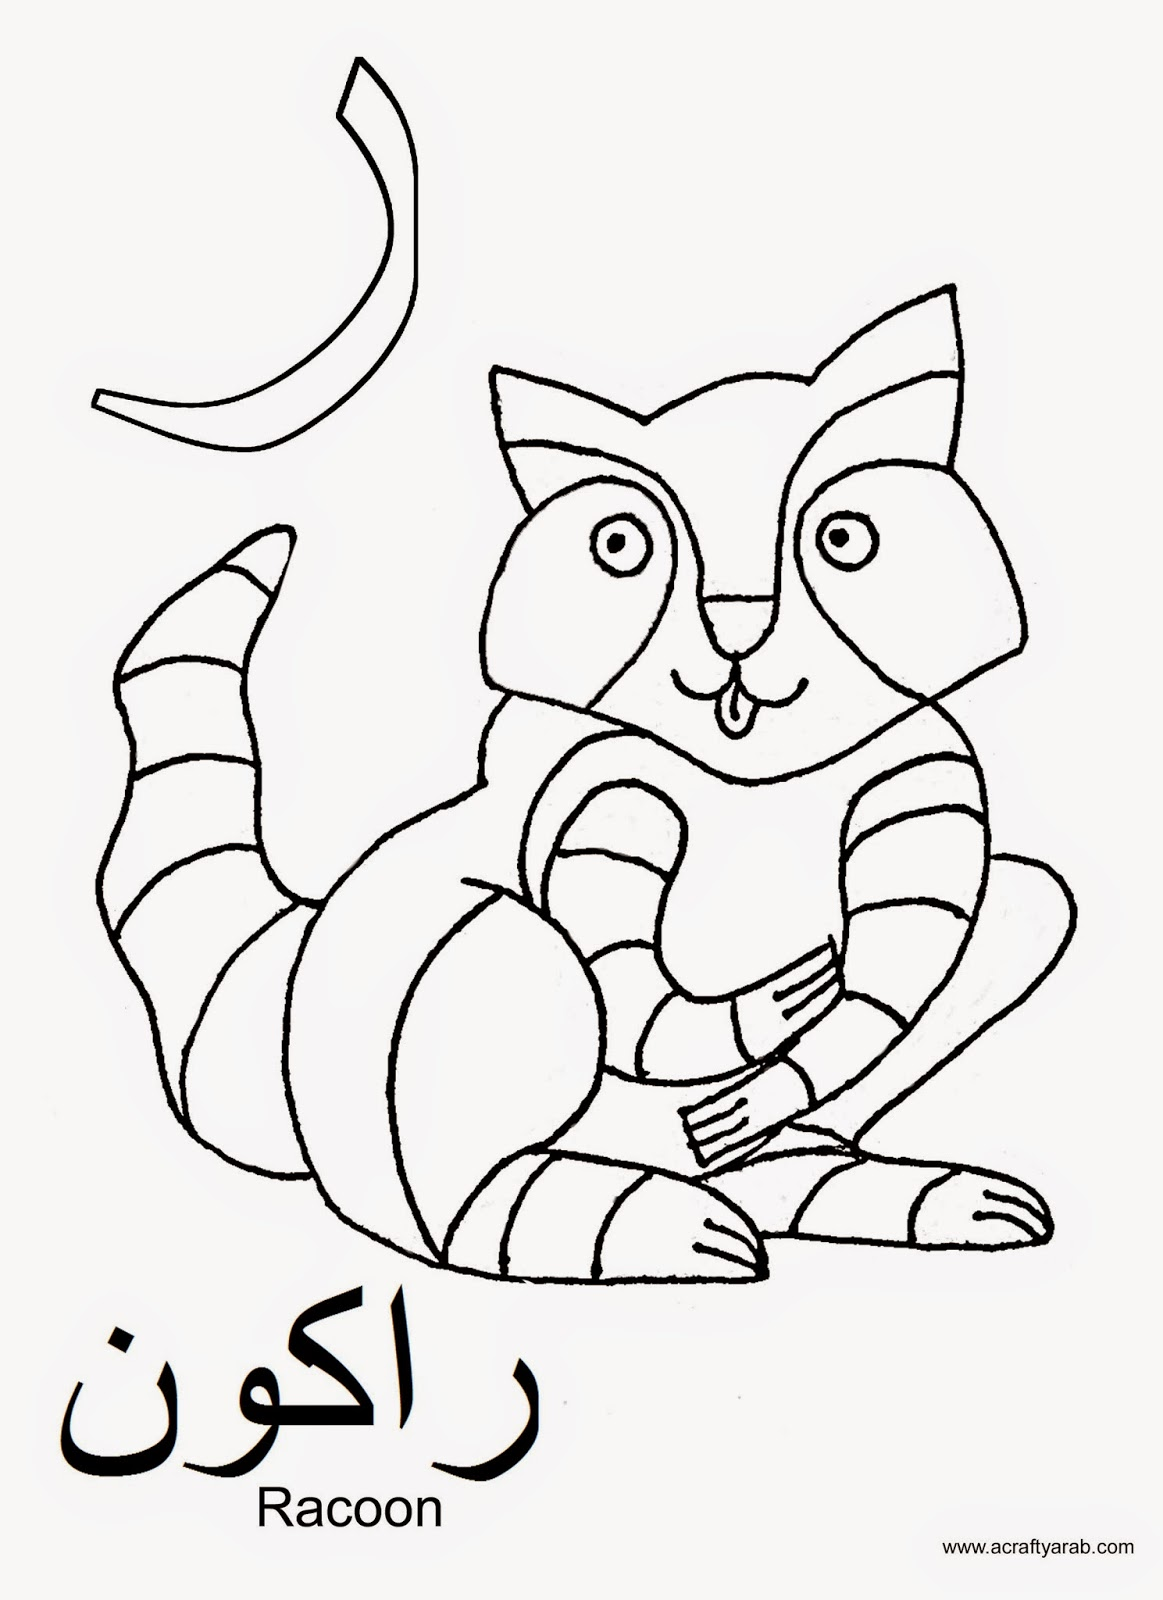 Arabic Alphabet Coloring PagesRa Is For Racoon